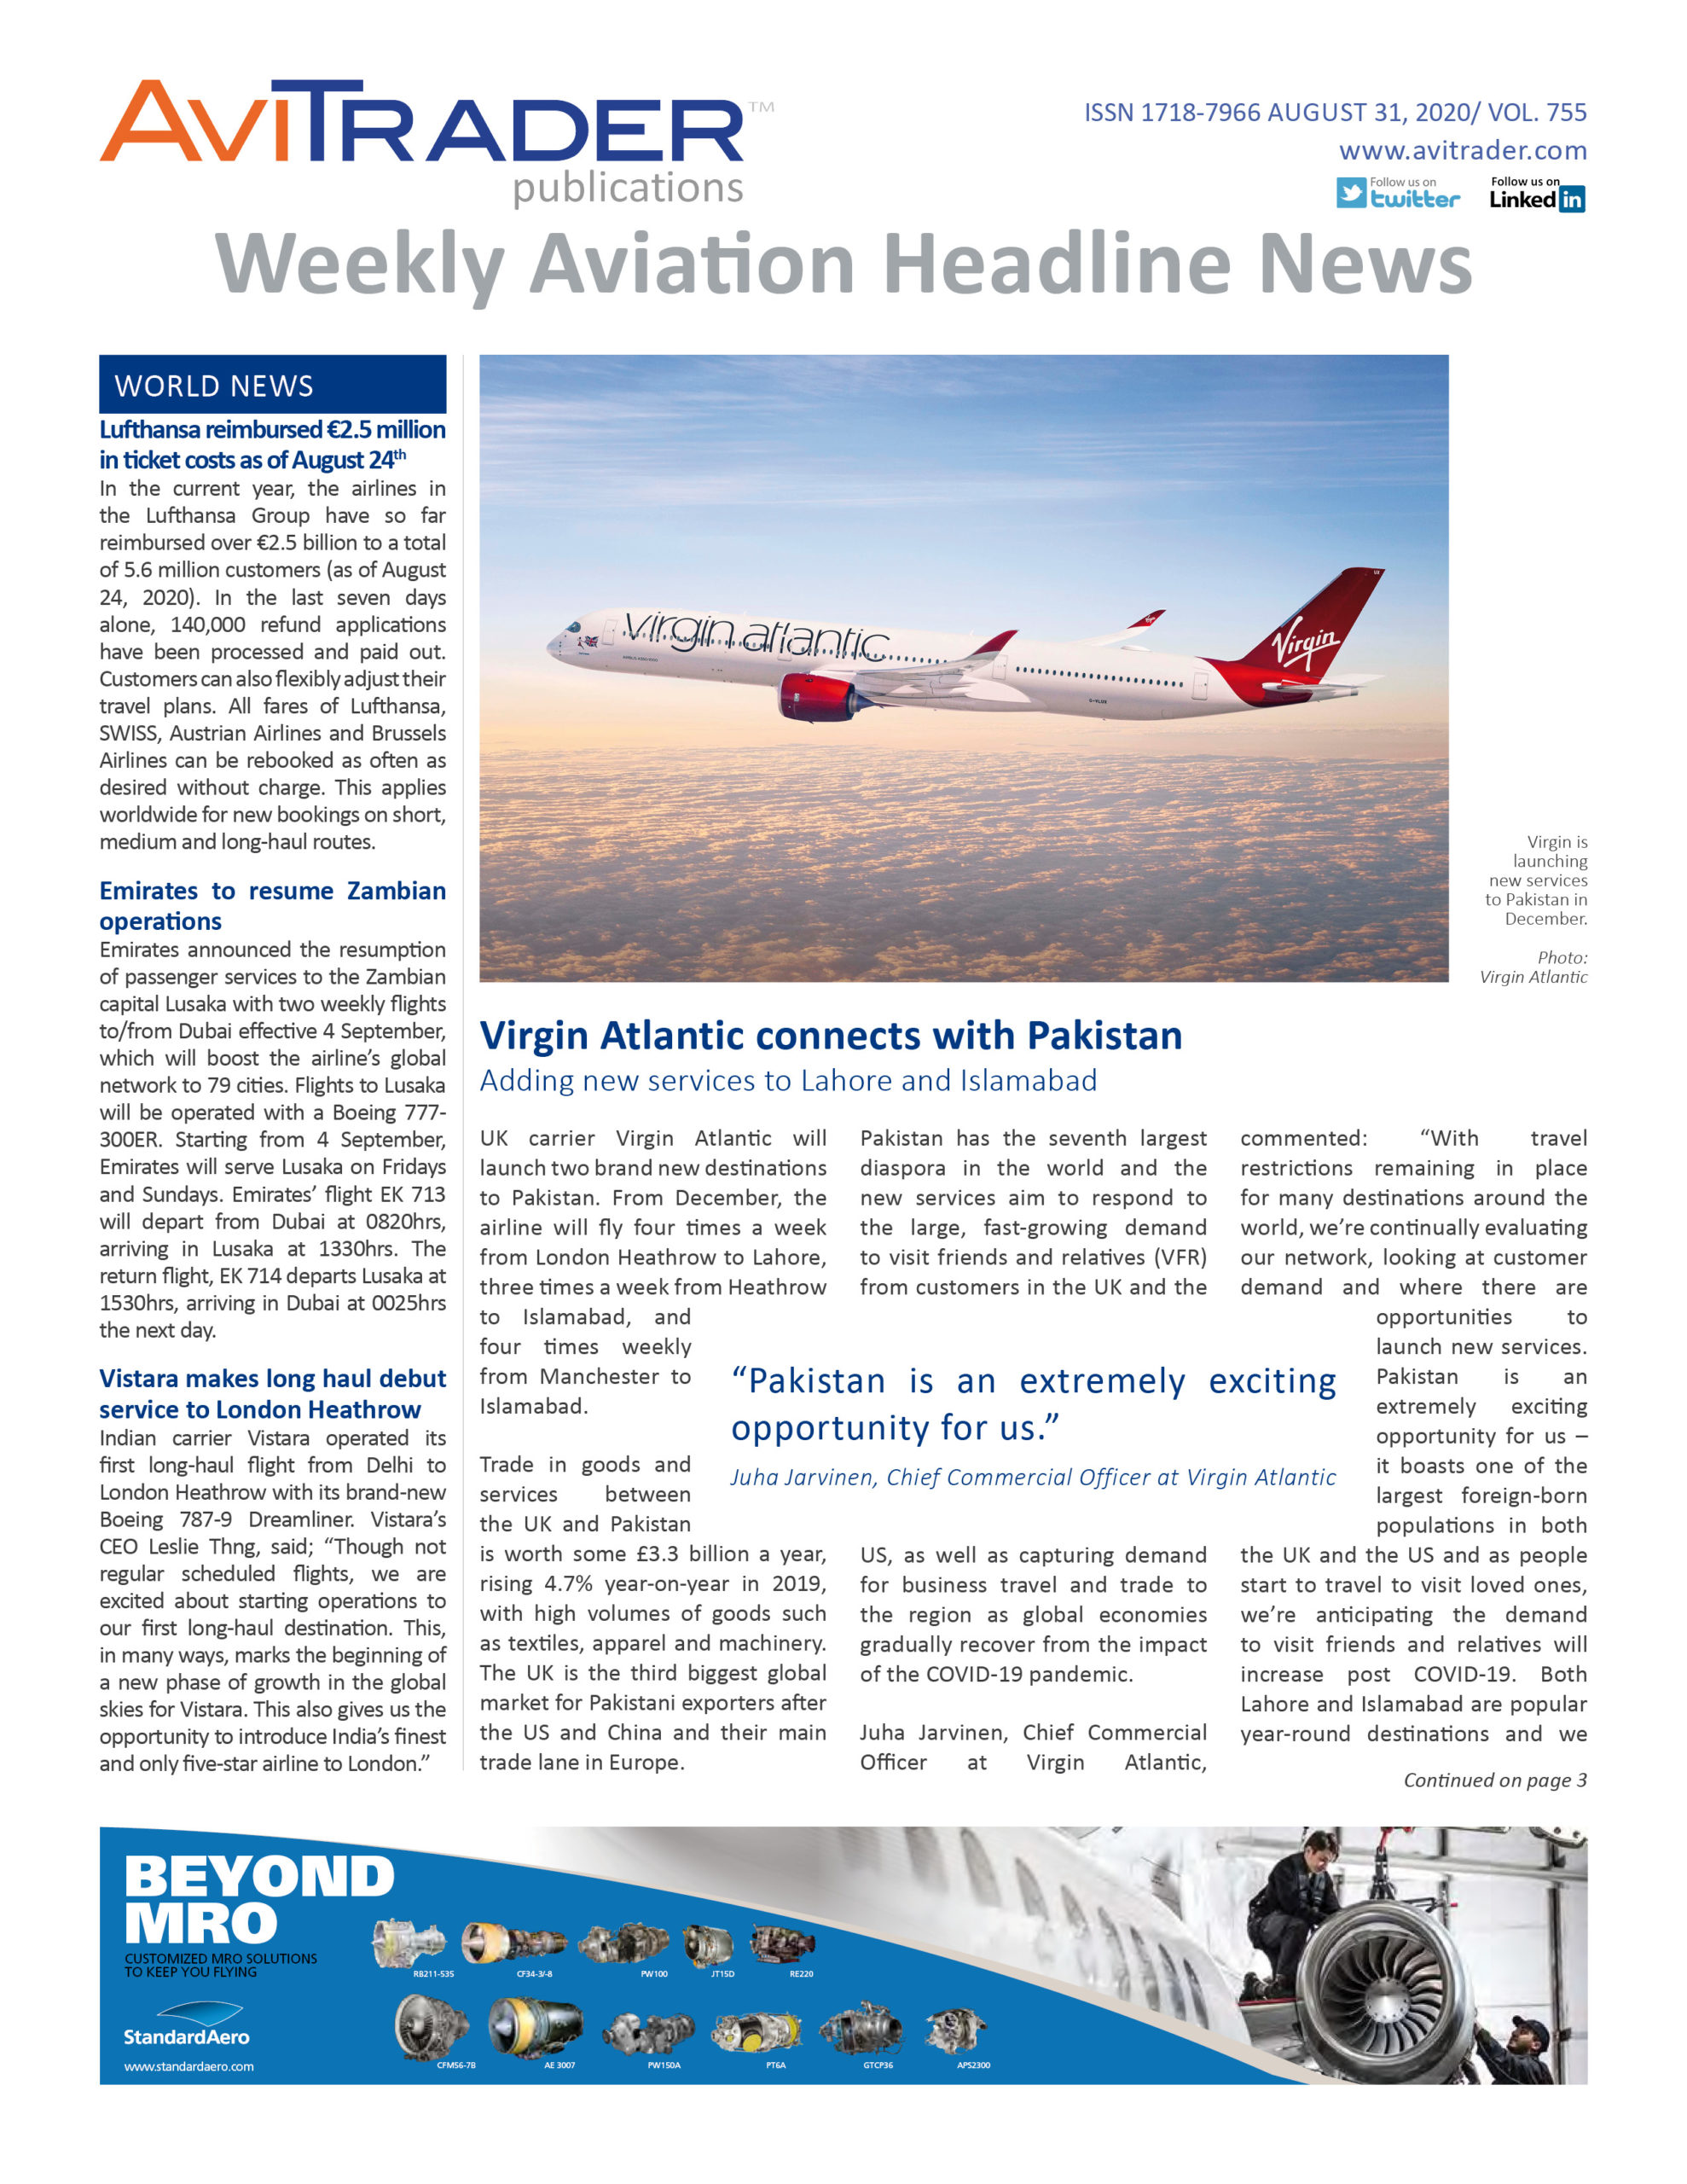 AviTrader_Weekly_Headline_News_Cover_2020-08-31